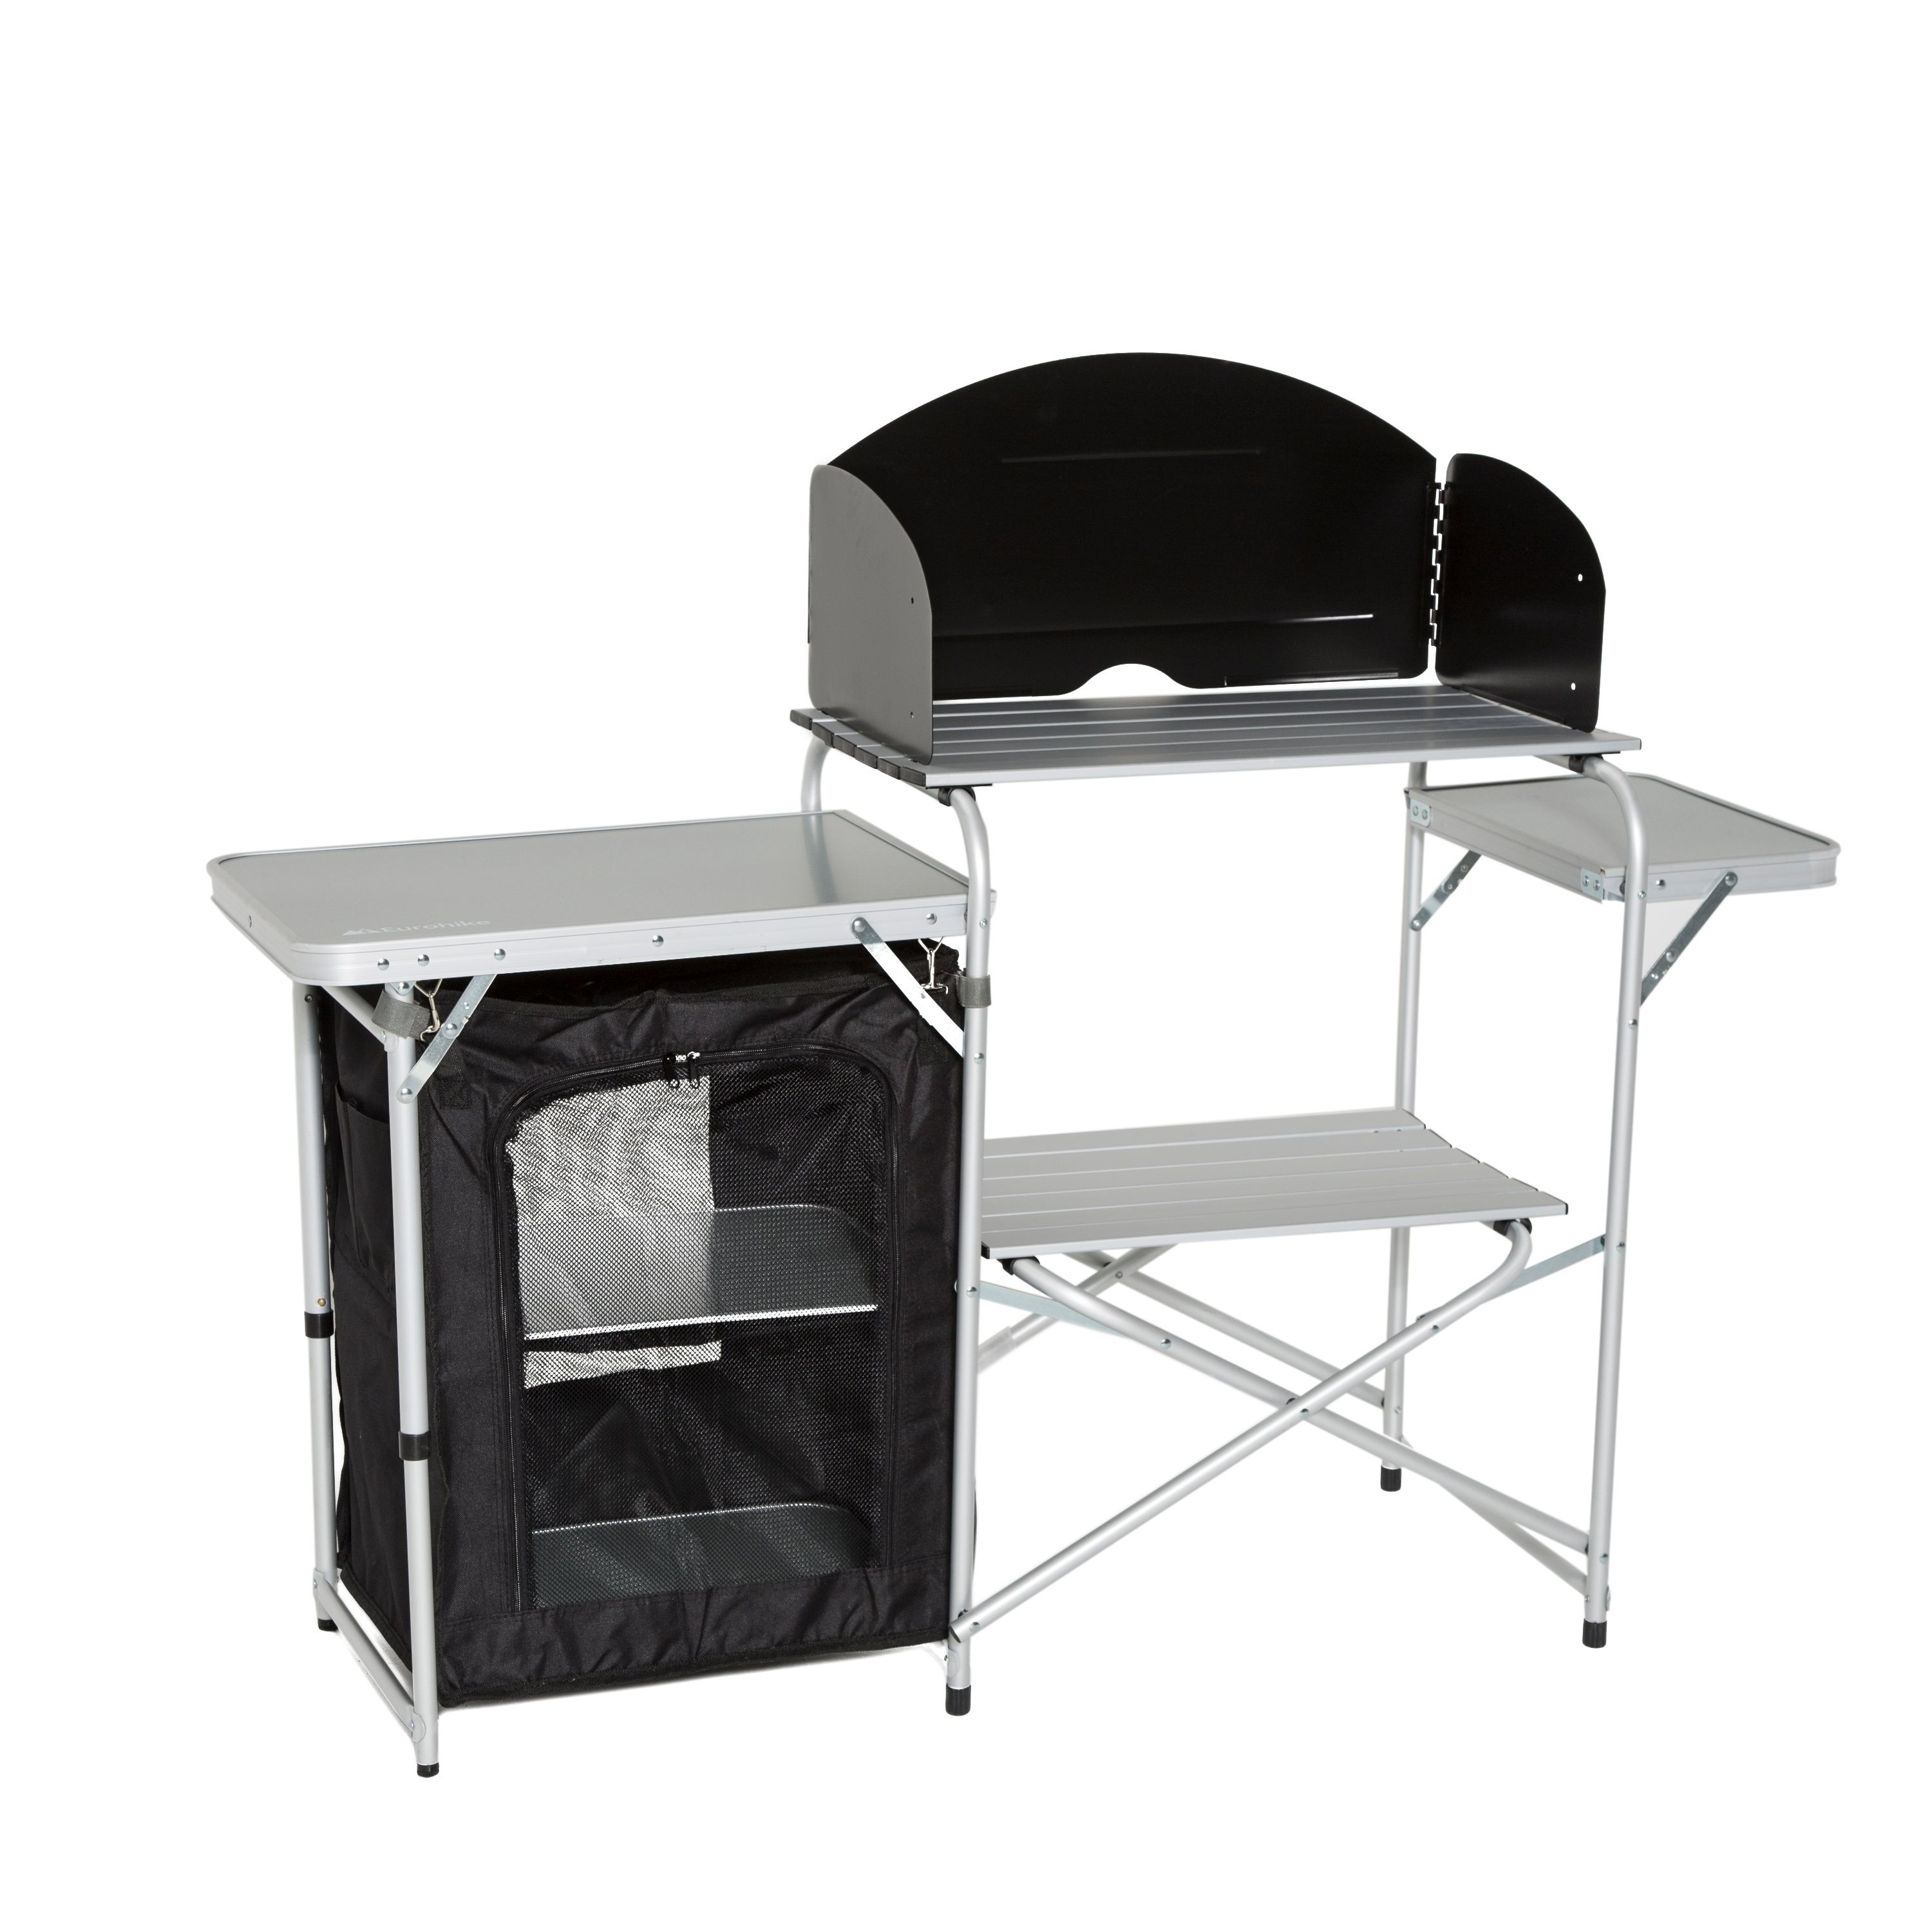 EUROHIKE Basecamp Kitchen Stand Deluxe